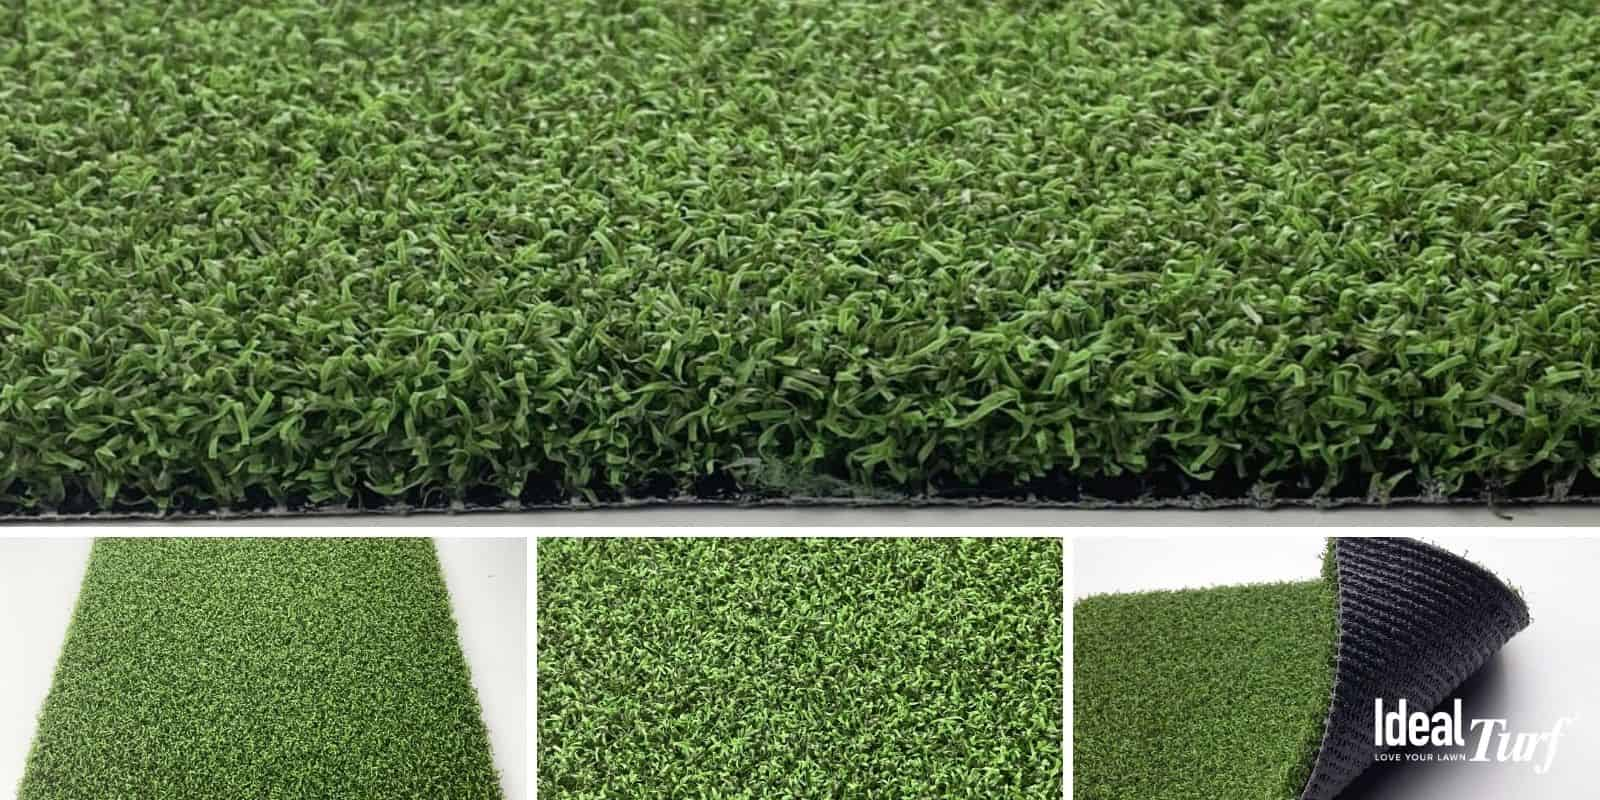 Ace Putt 56 - Putting Green Turf Product Photos